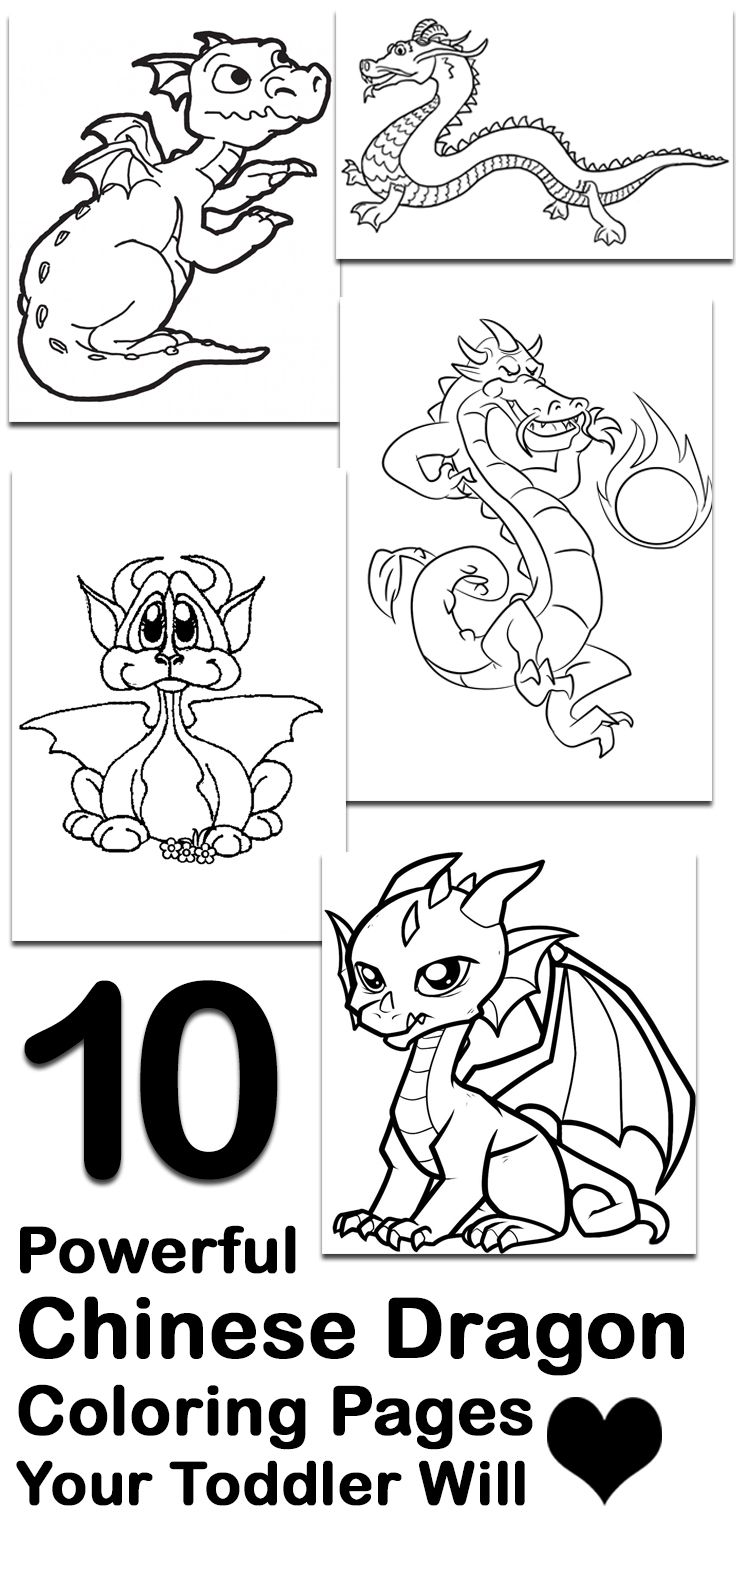 Top 10 Free Printable Chinese Dragon Coloring Pages Online ...